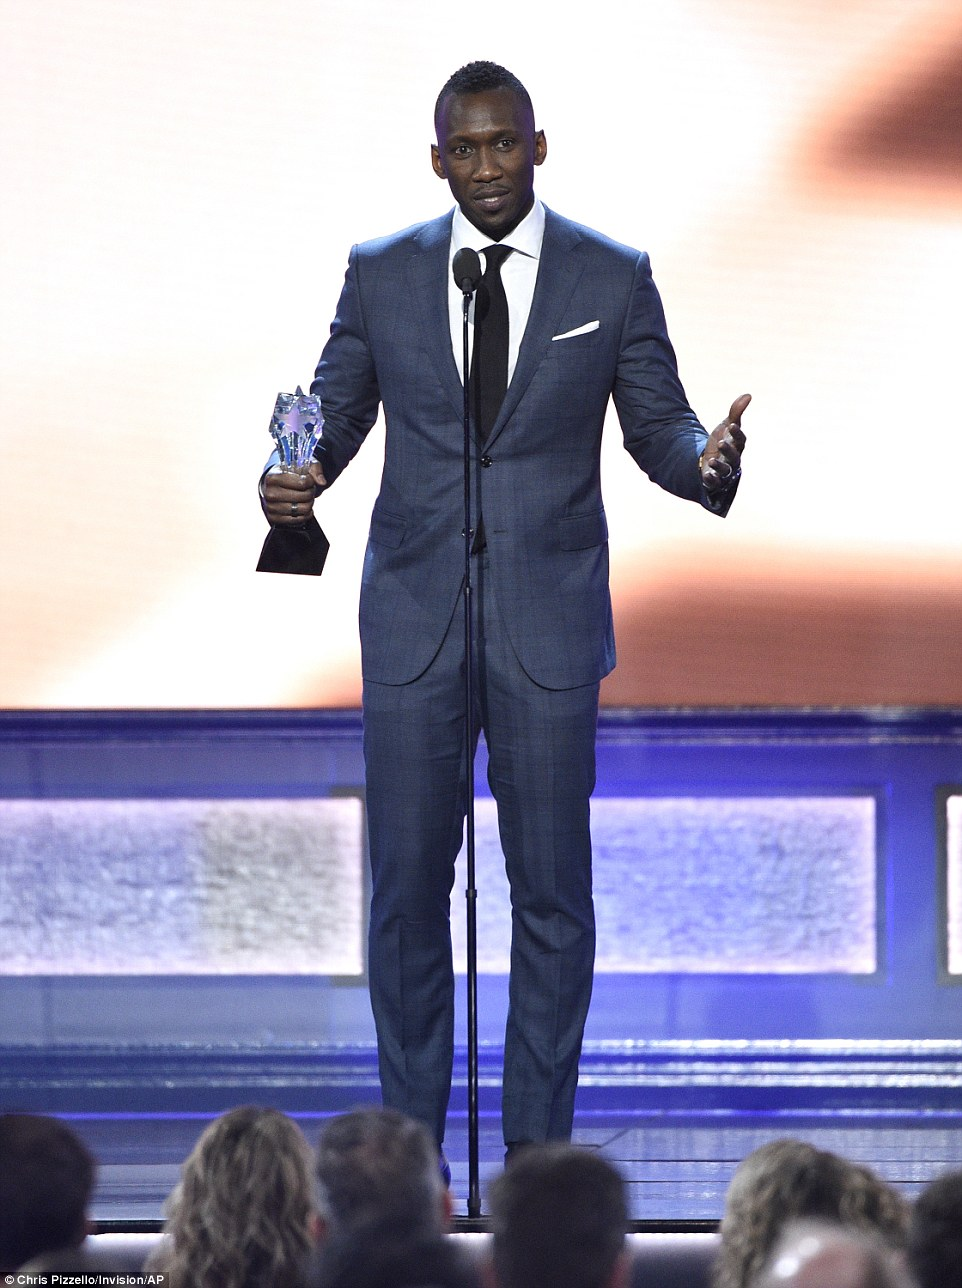 Big moment: Mahershala Ali accepted the award for Best Supporting Actor for Moonlight